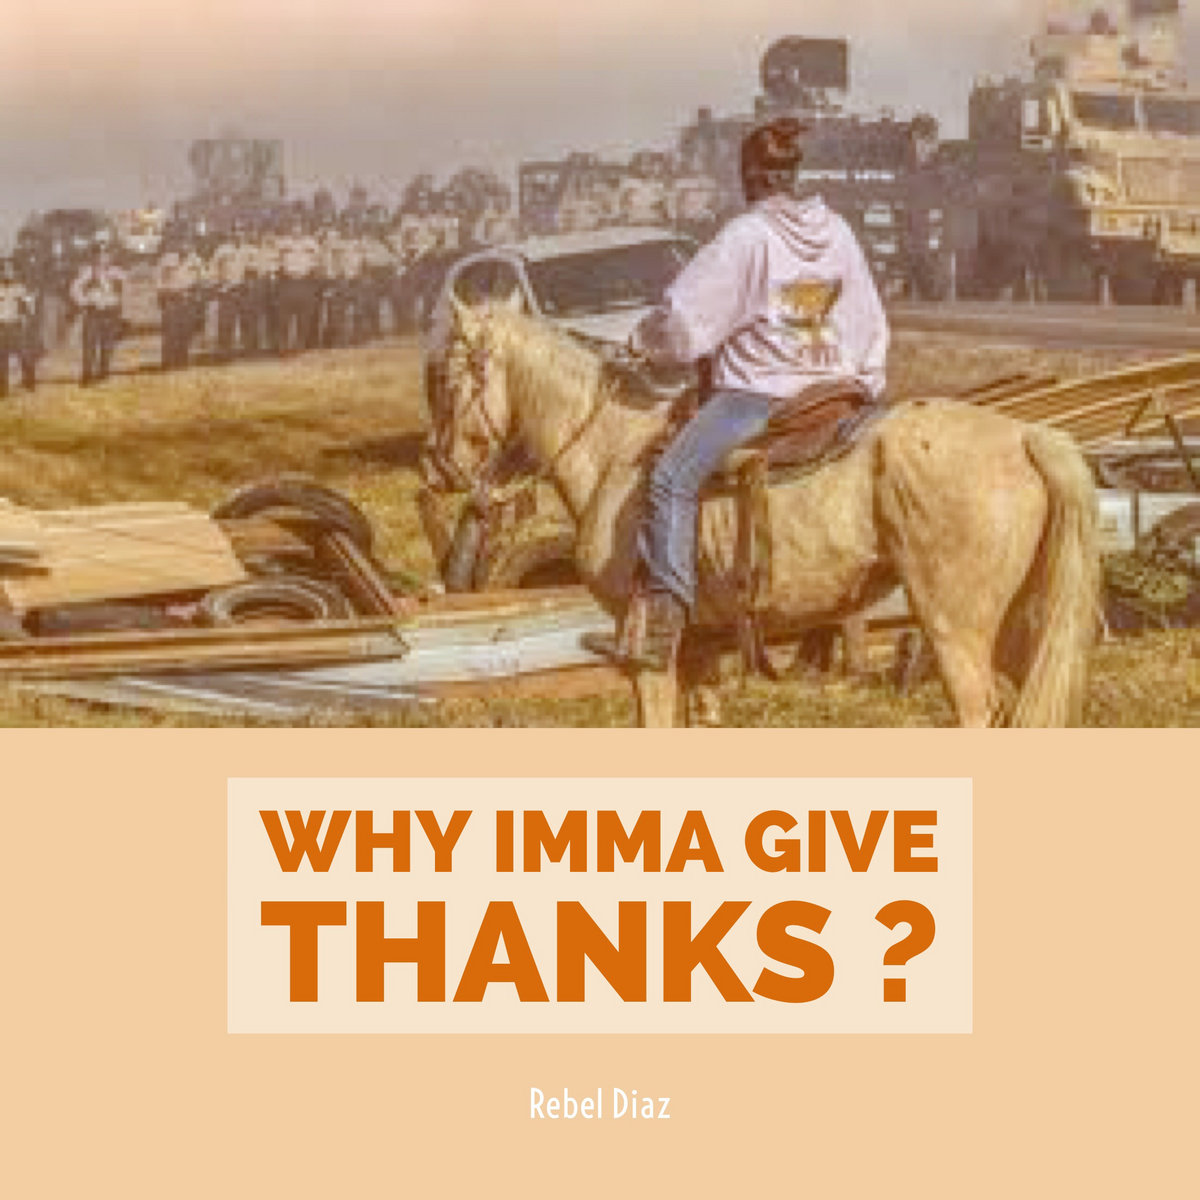 Why Imma Give Thanks? by Rebel Diaz